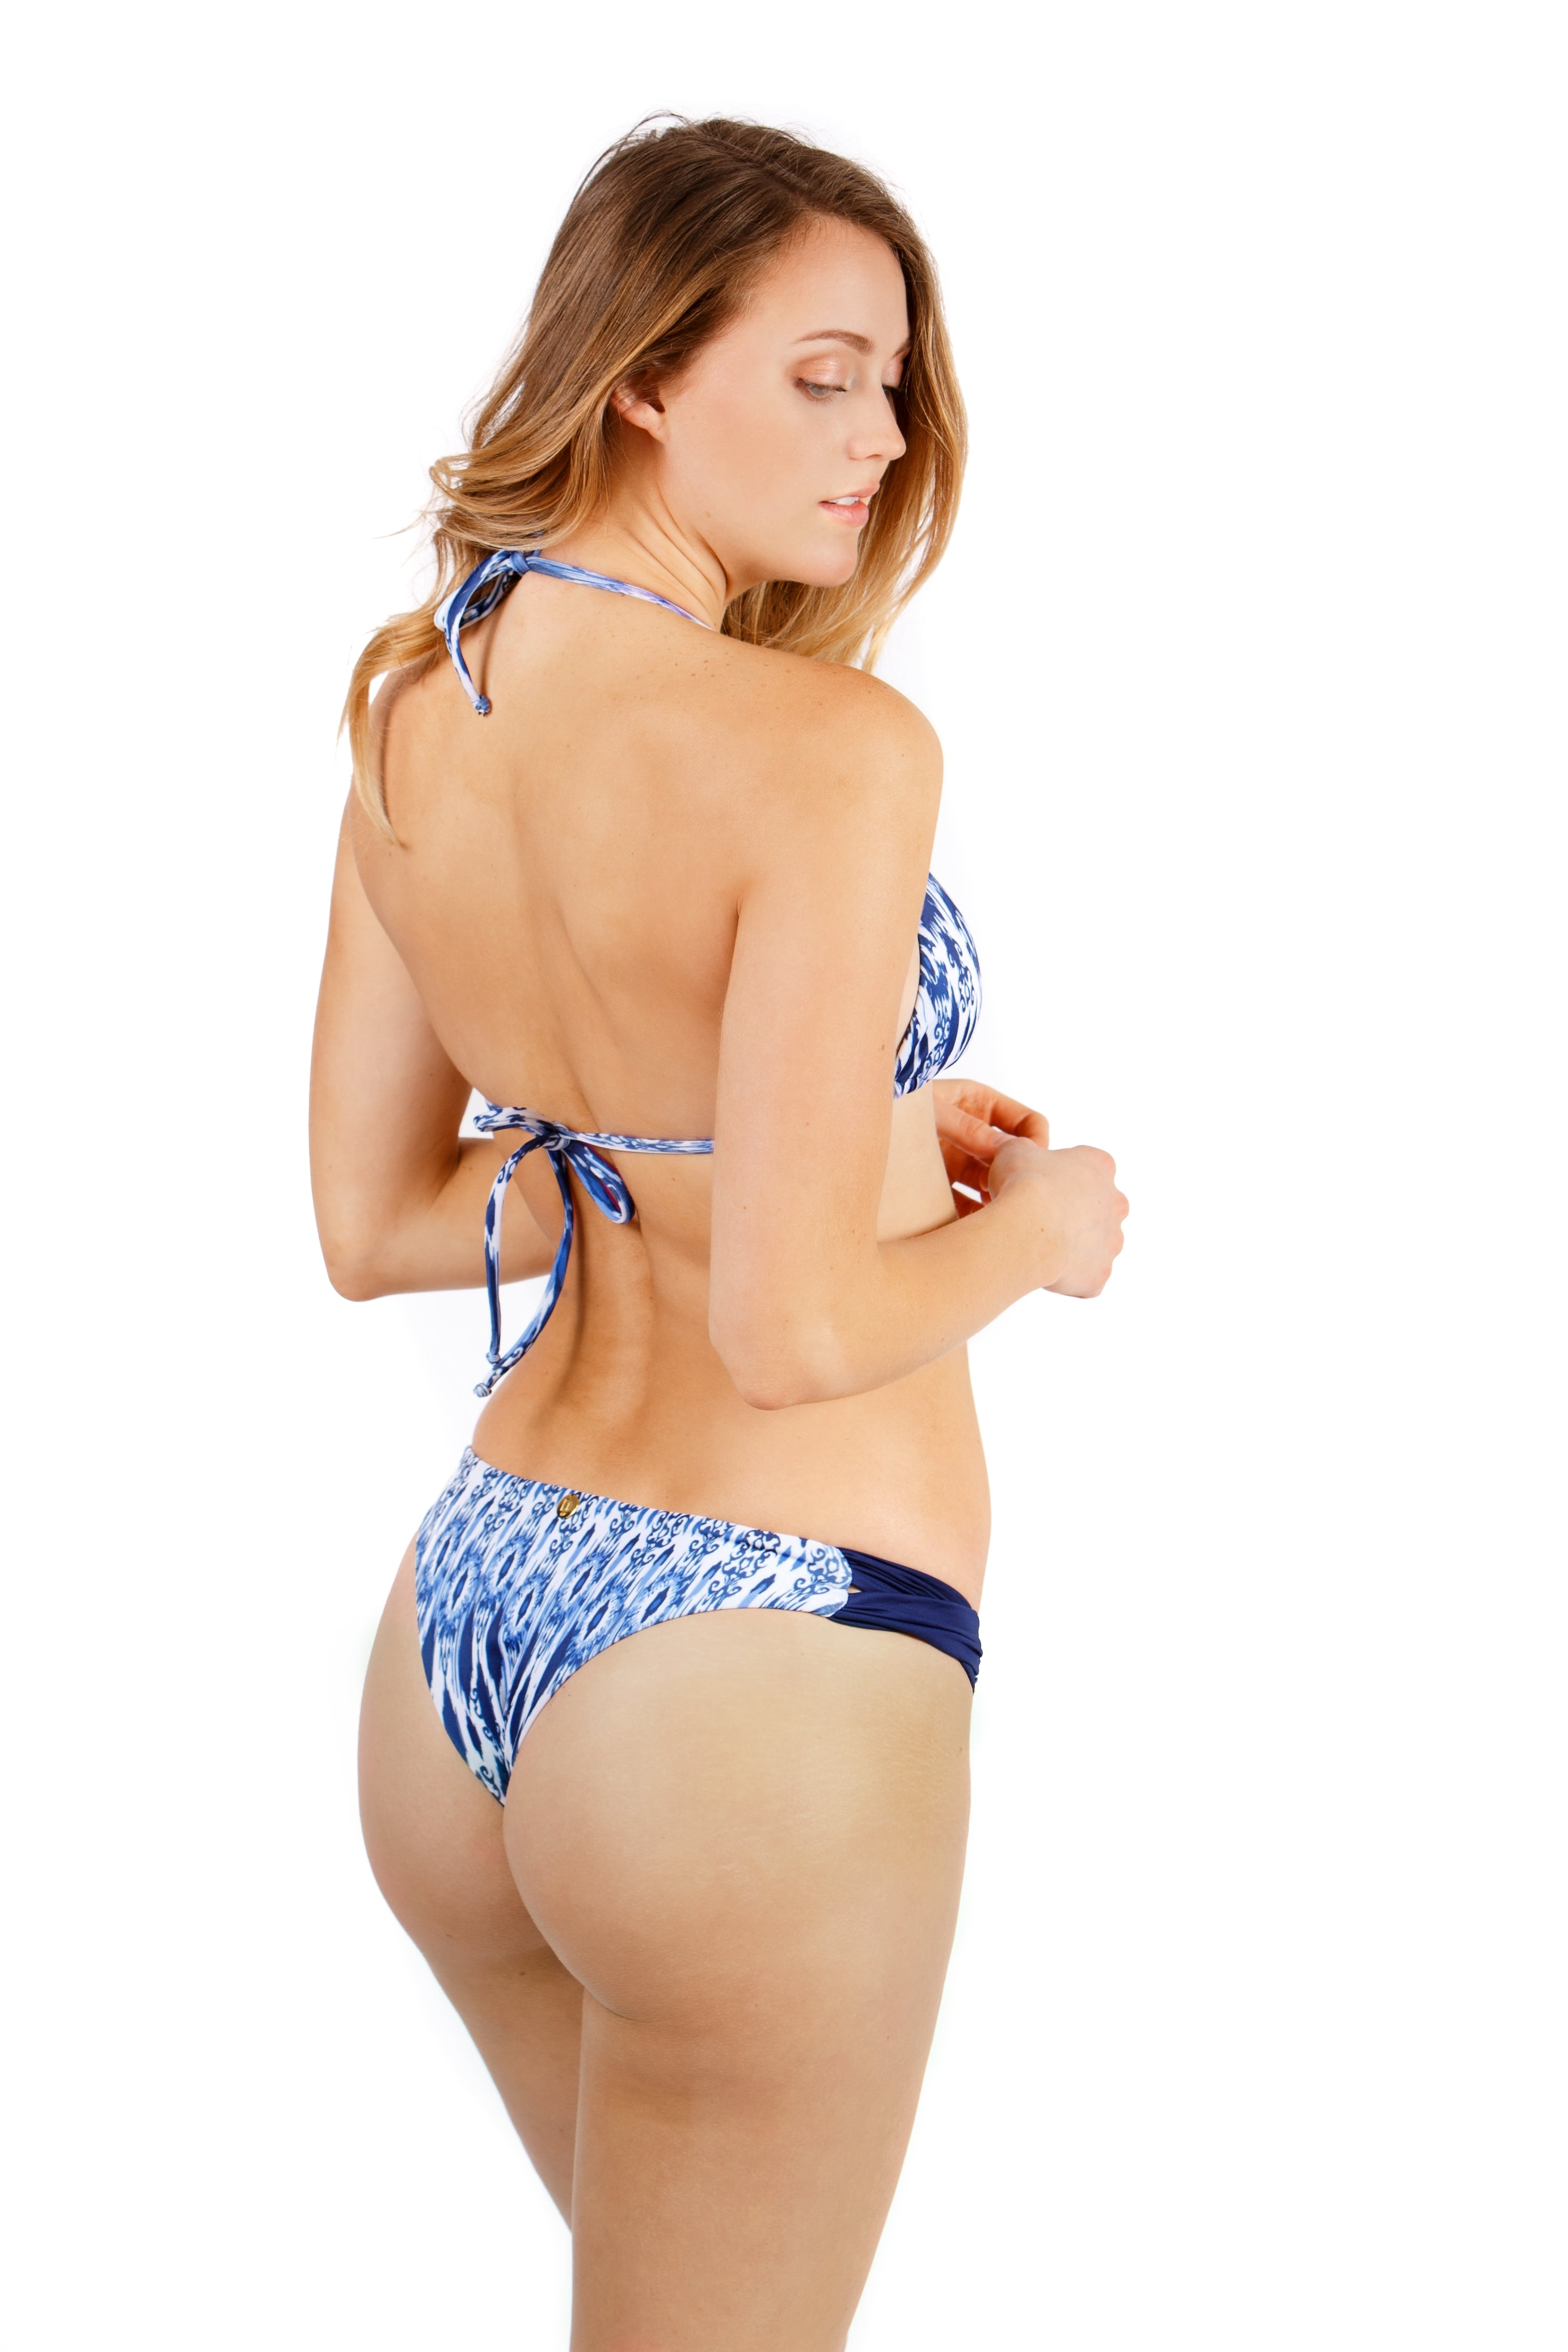 DALAI beachwear Blue Ikat  Brazilian Triangle Bikini